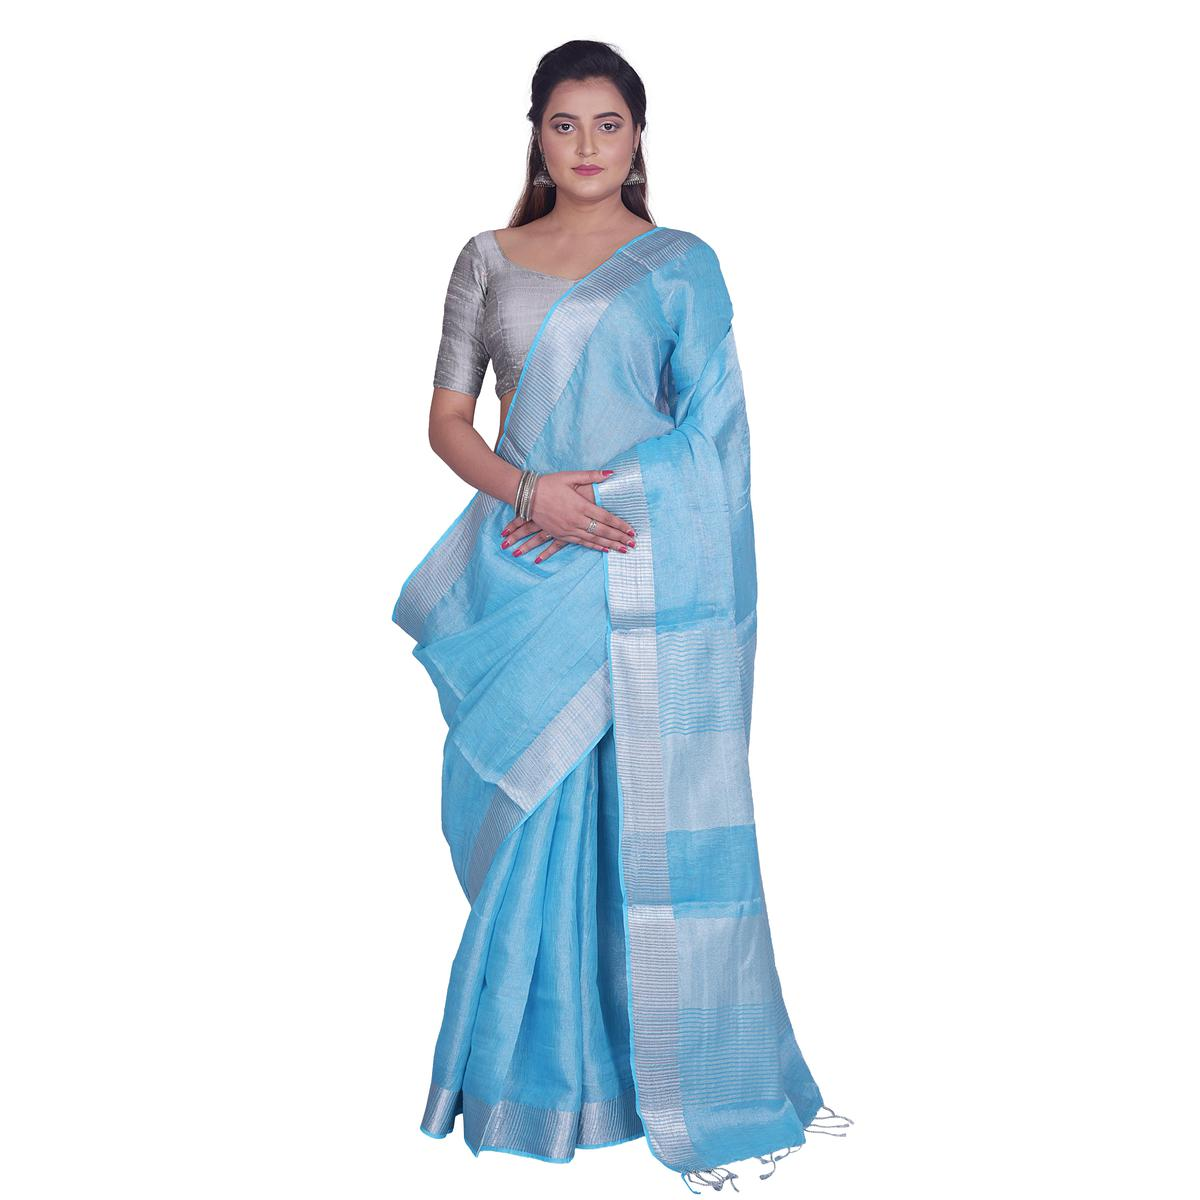 Kihums - Blue Hand Woven Linen Saree With Zari Border And Blouse Piece